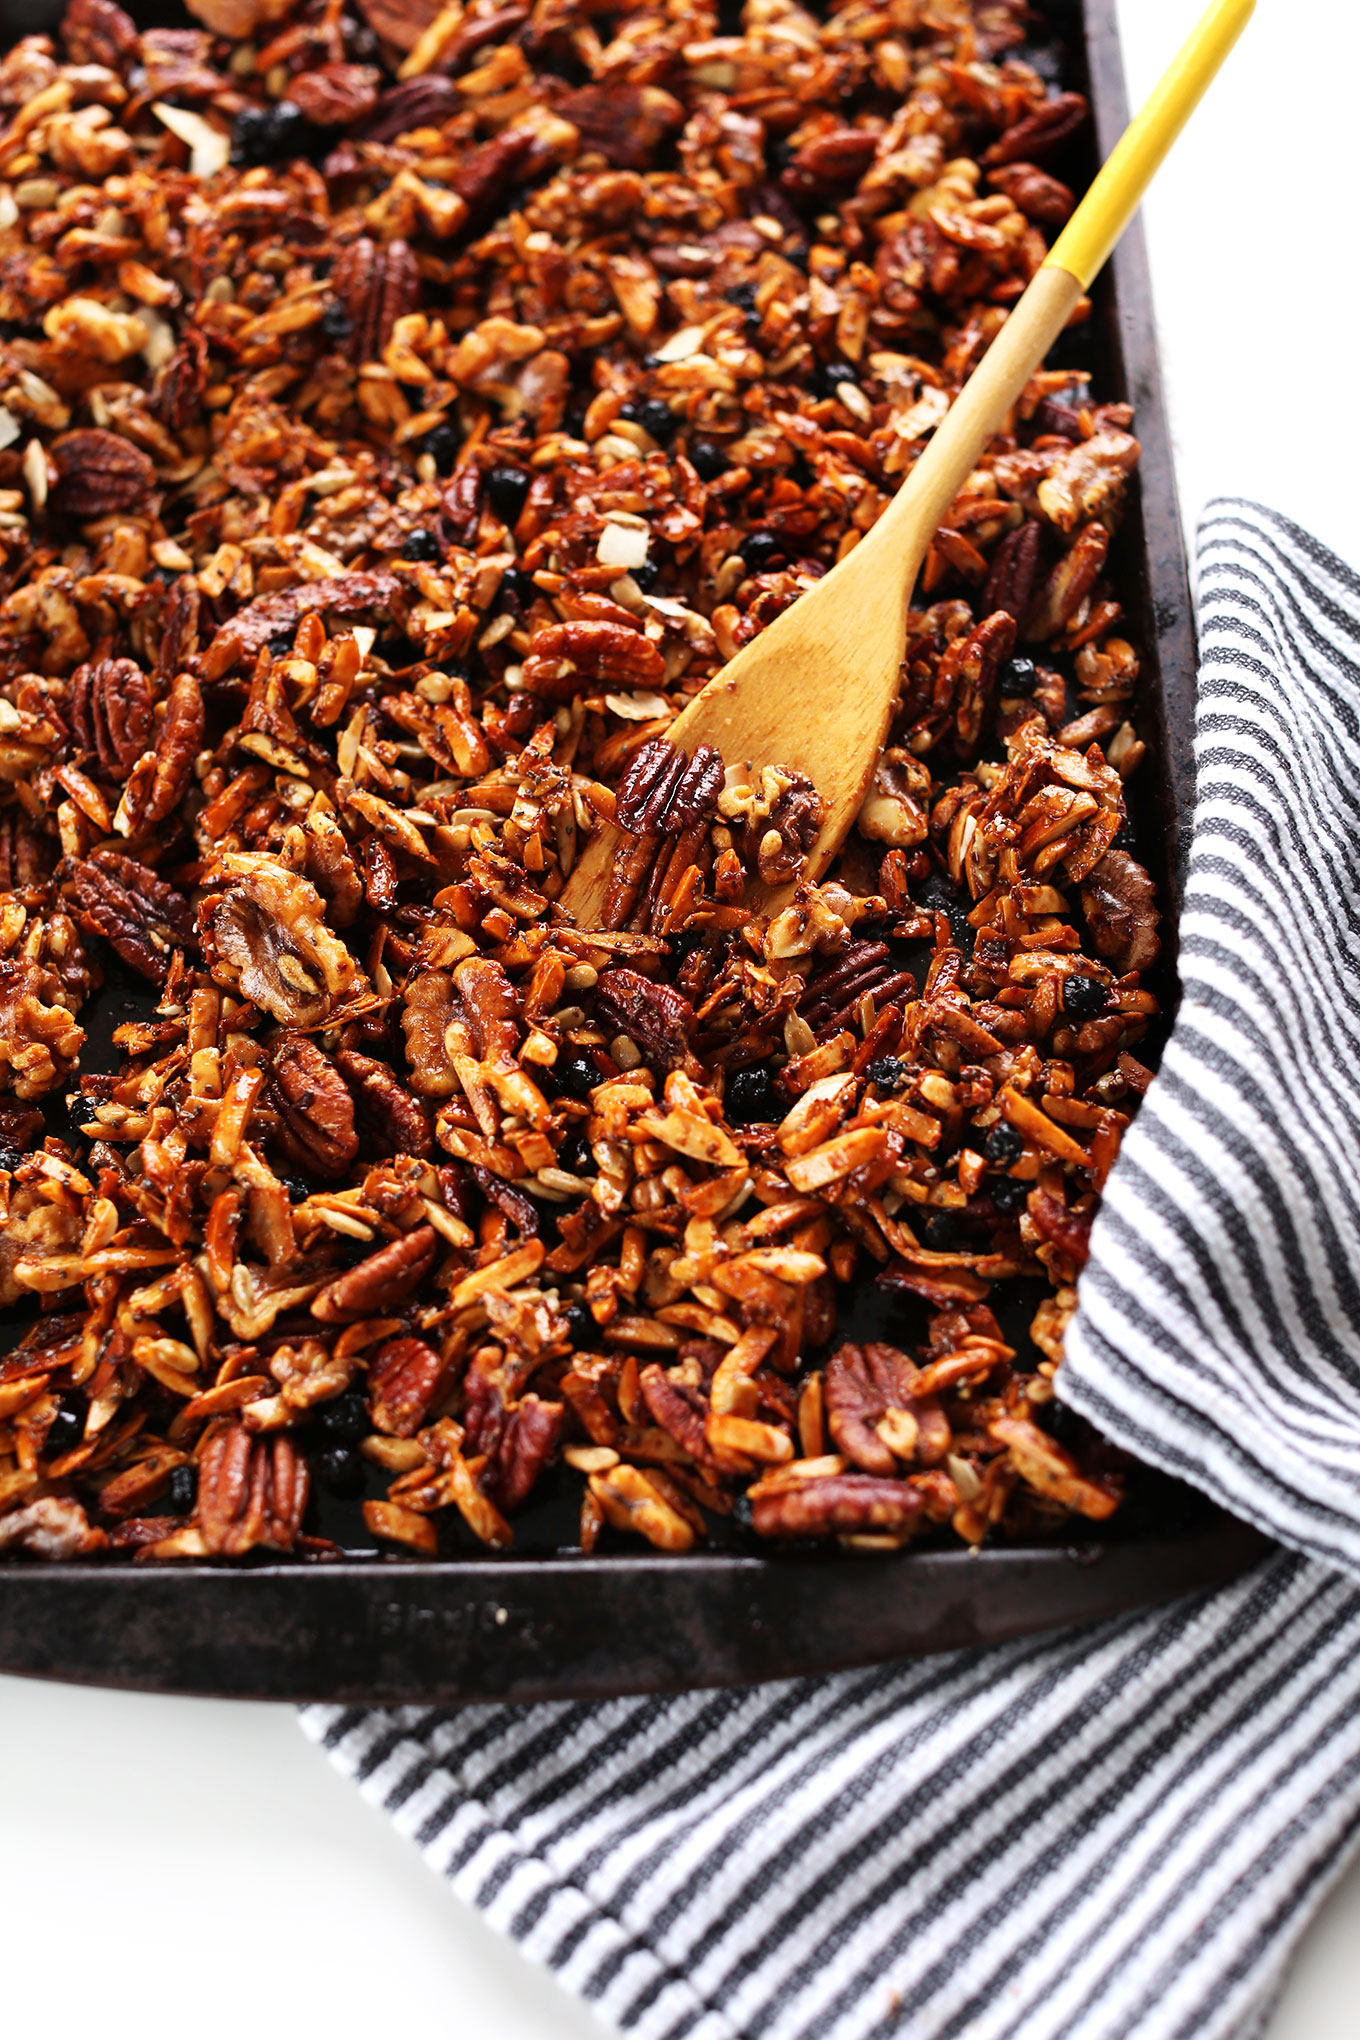 Using a wooden spoon to stir our Grain-Free Granola on a baking sheet